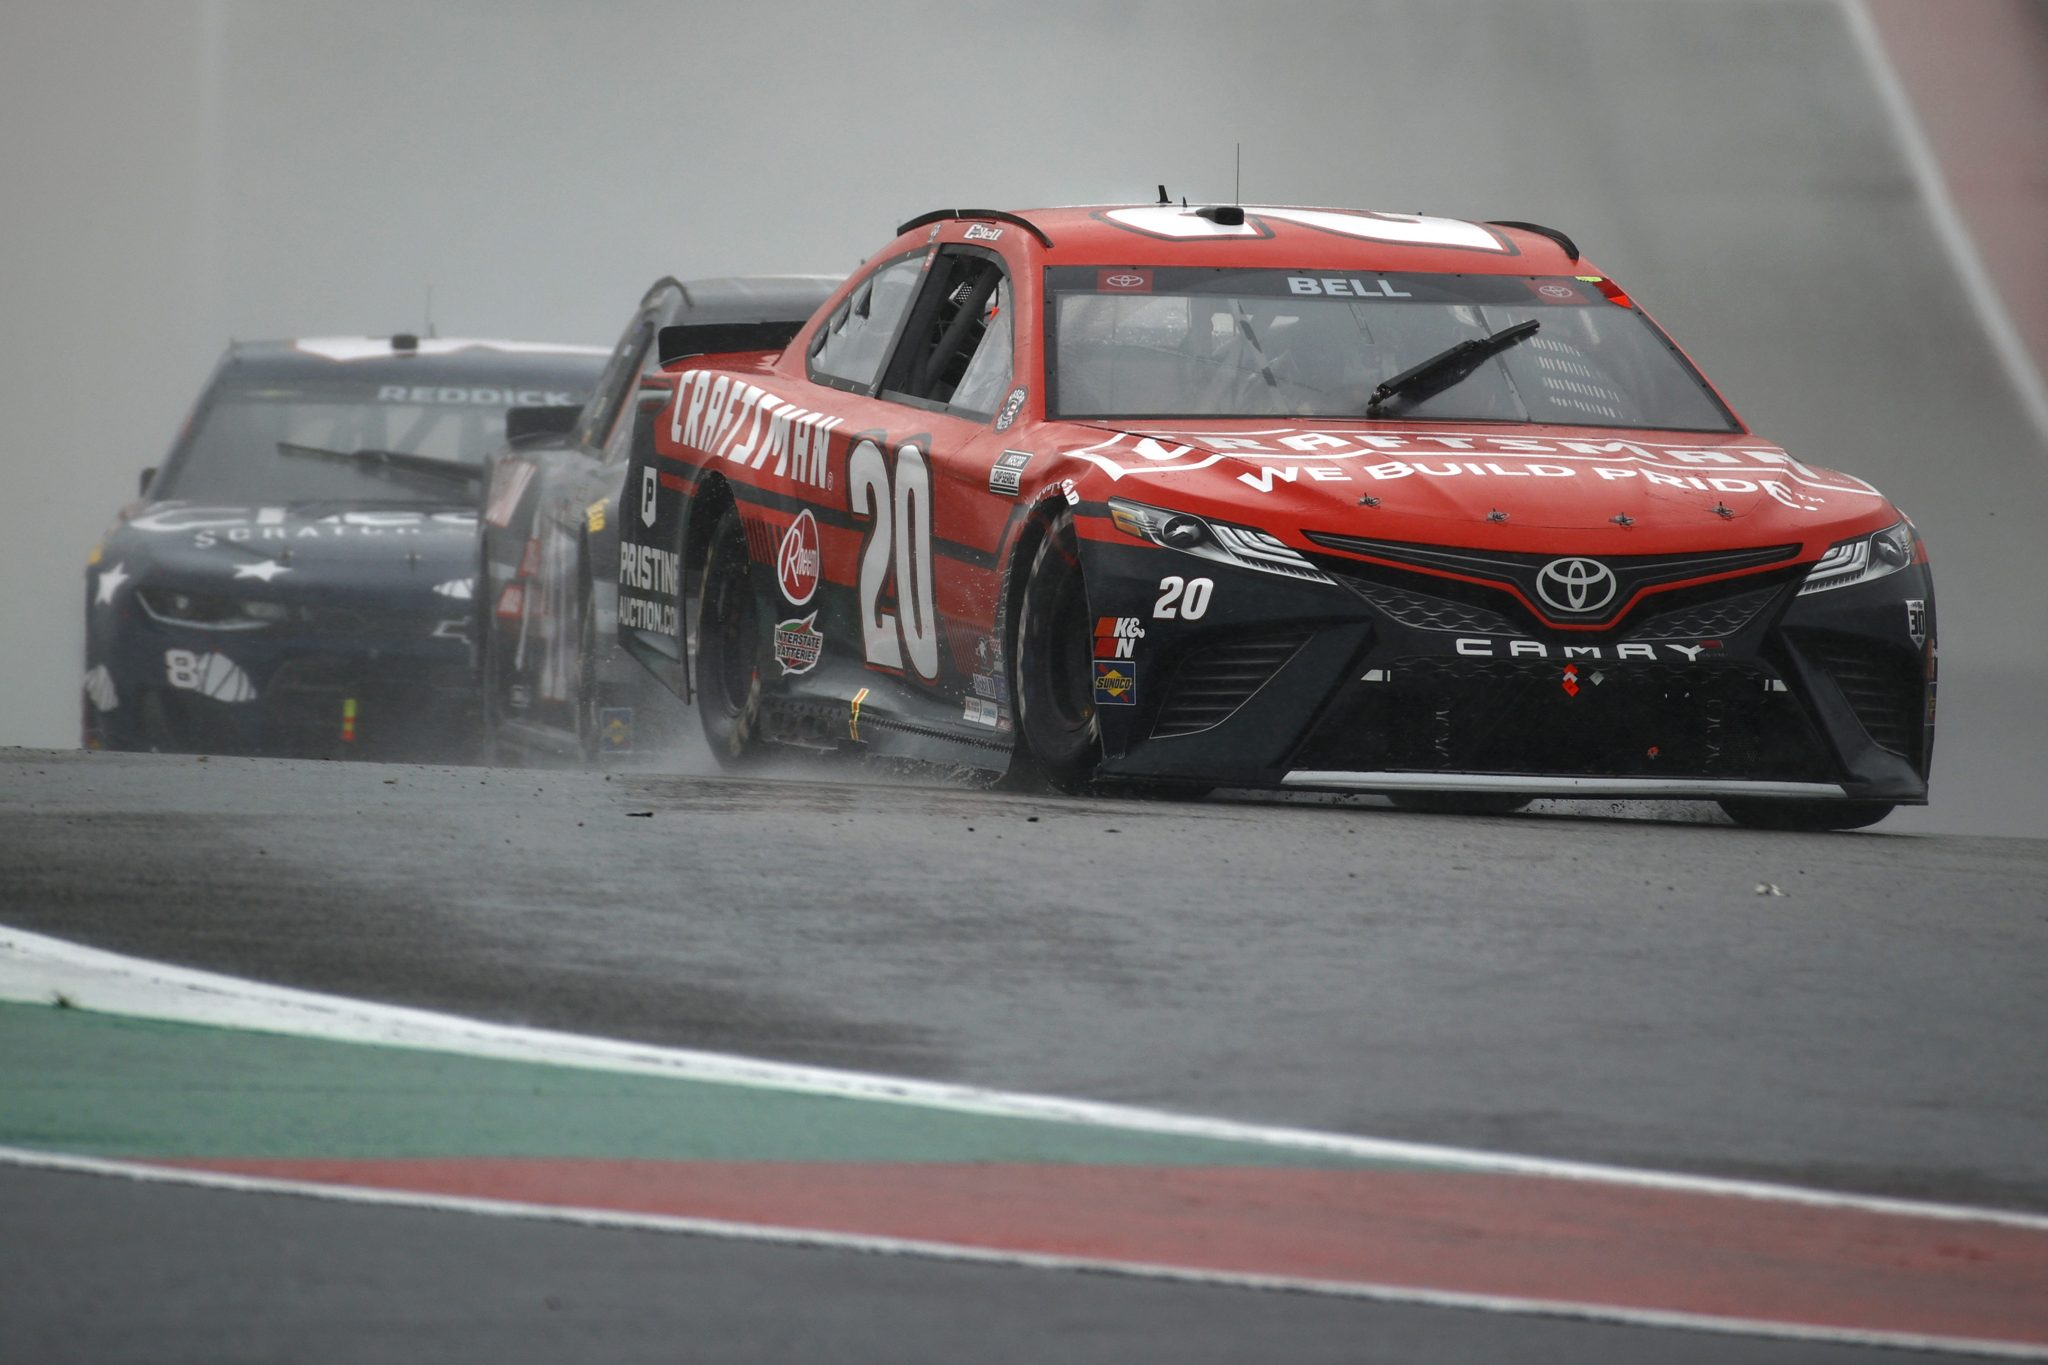 AUSTIN, TEXAS - MAY 23: Christopher Bell, driver of the #20 Craftsman Toyota, drives during the NASCAR Cup Series EchoPark Texas Grand Prix at Circuit of The Americas on May 23, 2021 in Austin, Texas. (Photo by Jared C. Tilton/Getty Images) | Getty Images